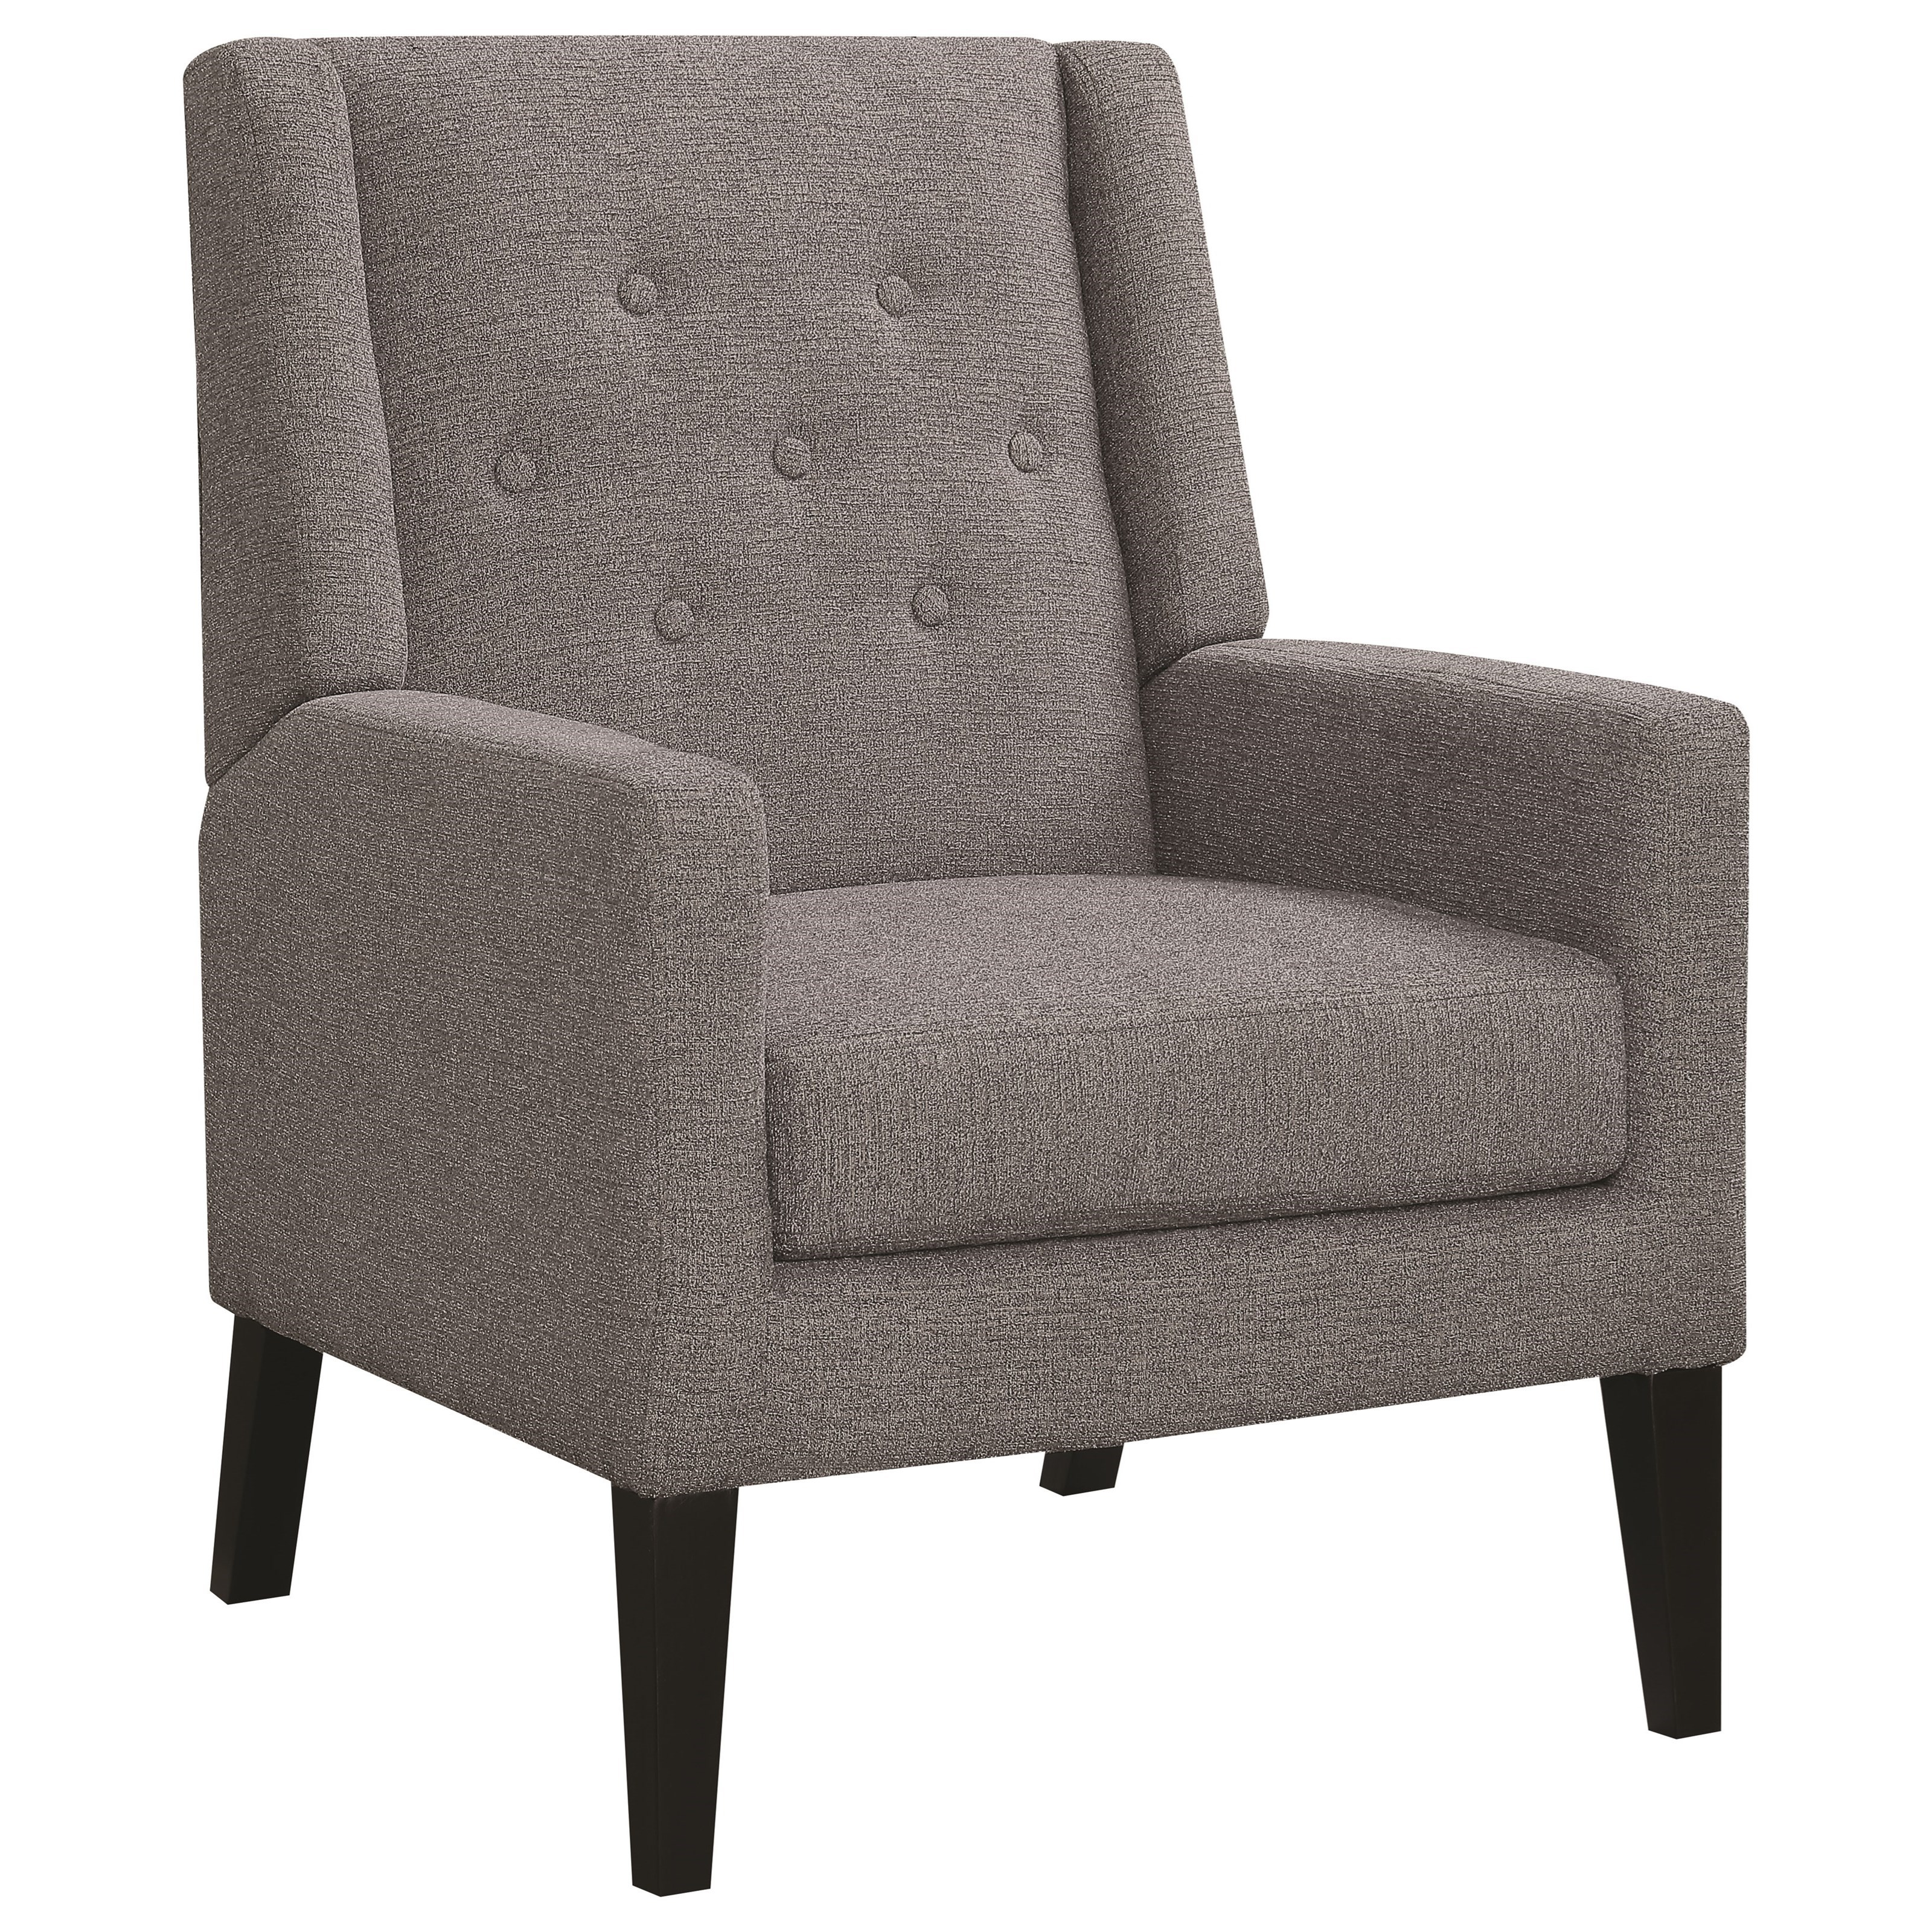 Scott Living 903379 Accent Chair - Item Number: 903379